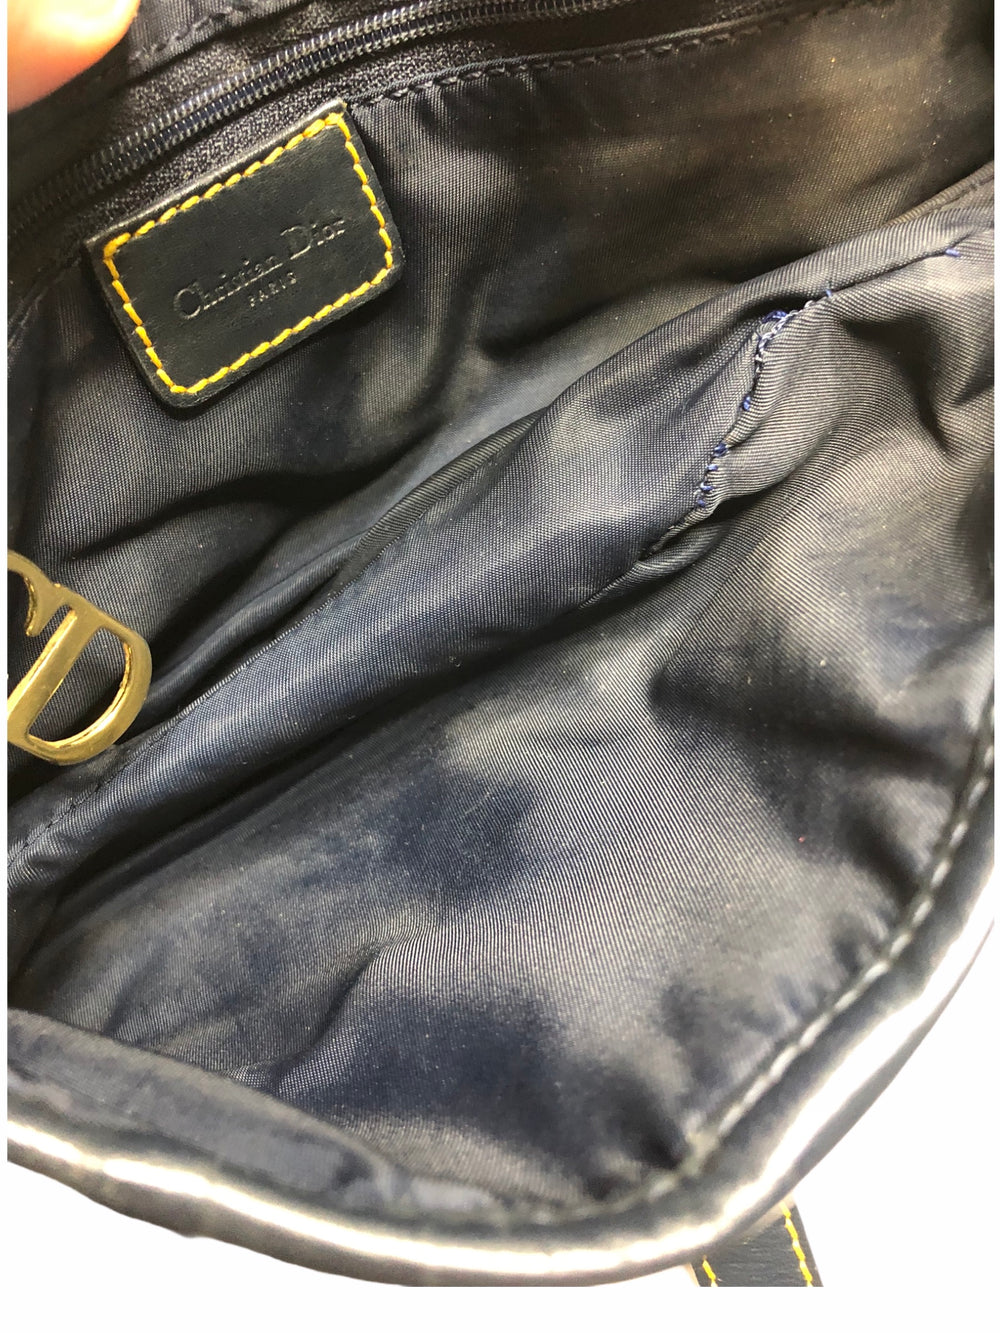 Christian Dior Navy Leather & Canvas Saddle Bag  - As Seen on Instagram 4/11/2020